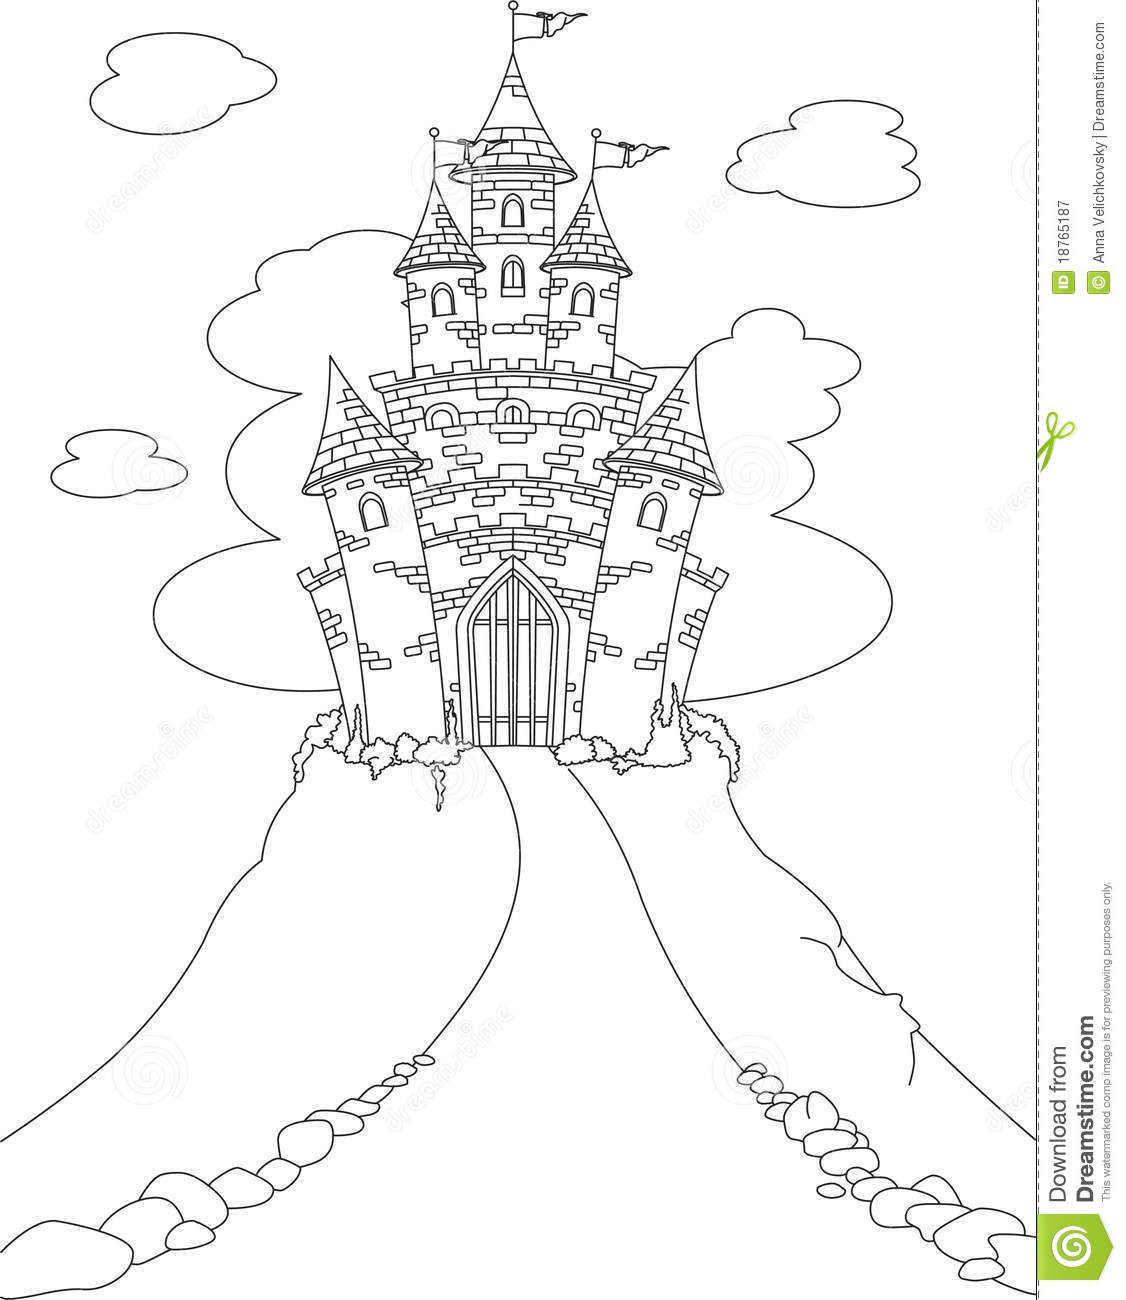 Disney Princess Castle Coloring Pages At Getcolorings